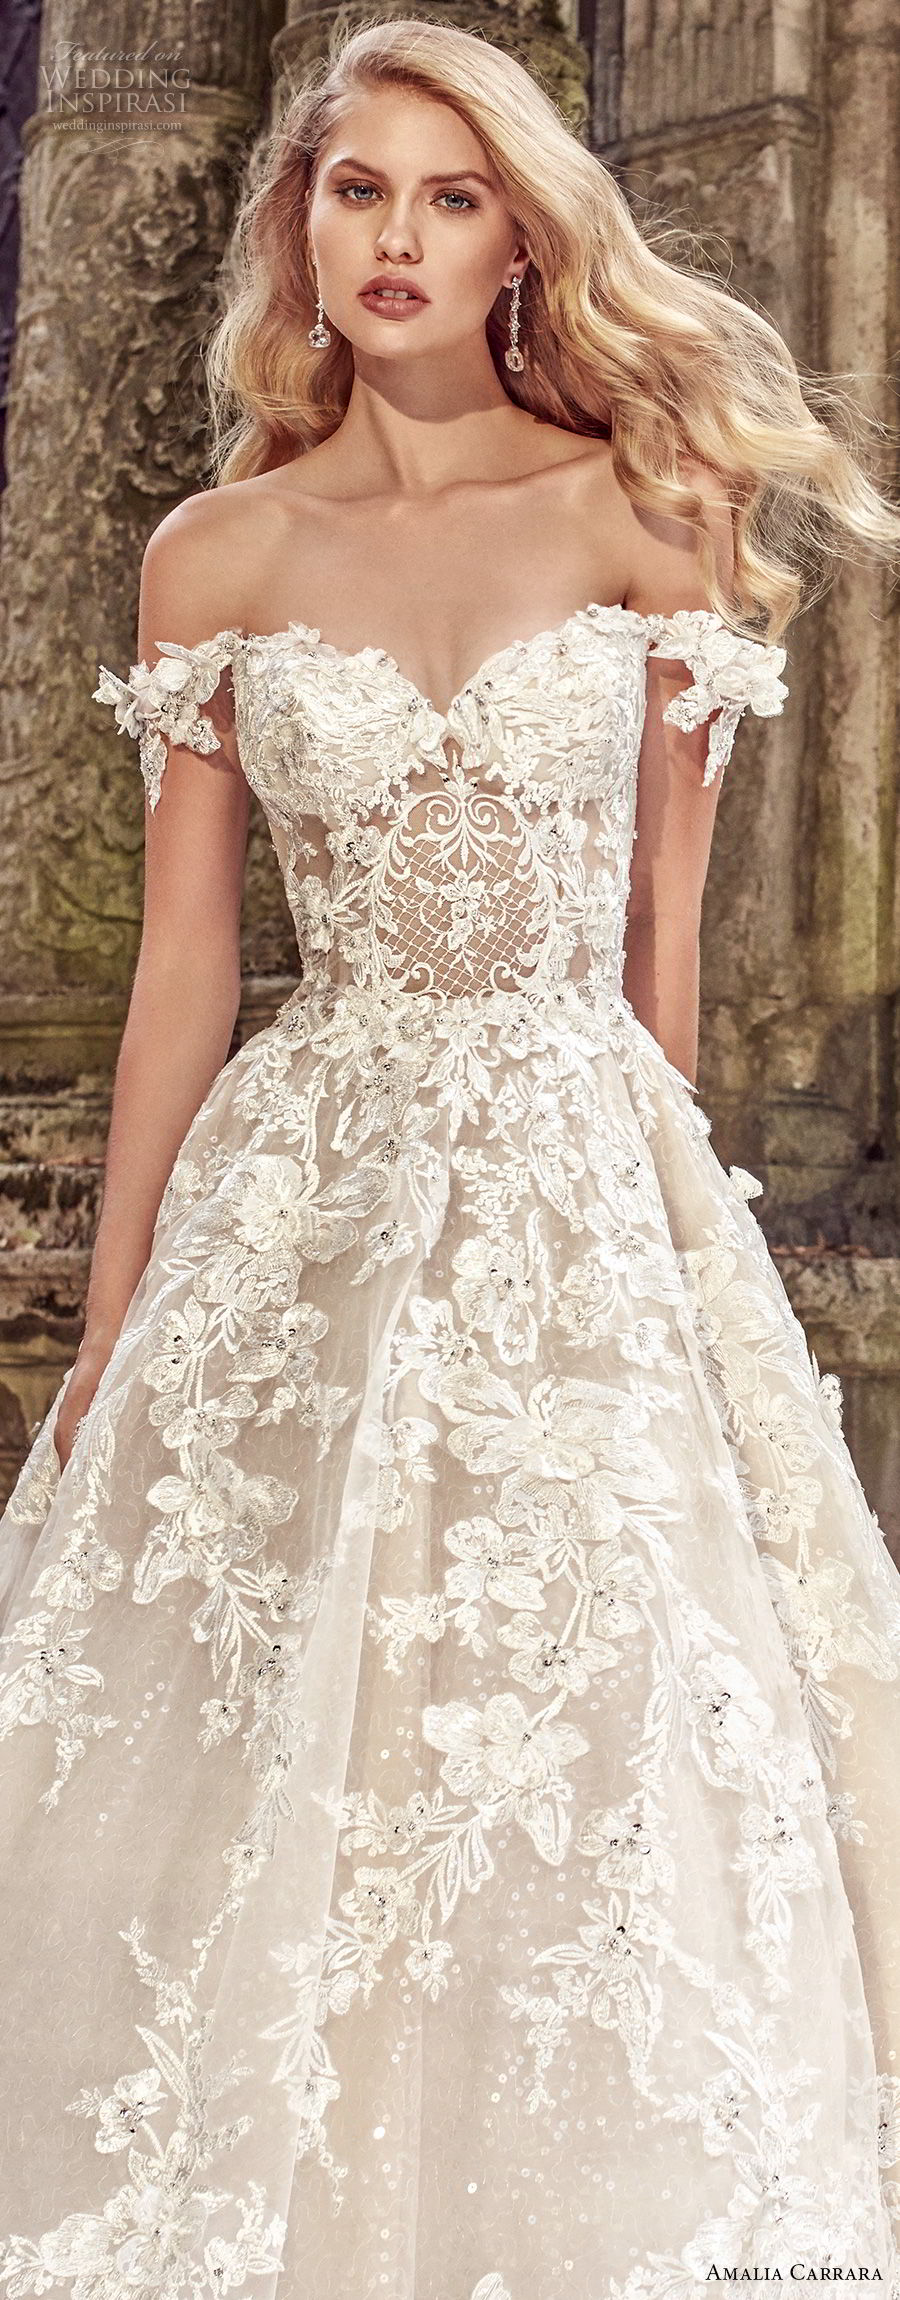 Amalia carrara spring 2018 wedding dresses crazyforus Wedding dress themes 2018